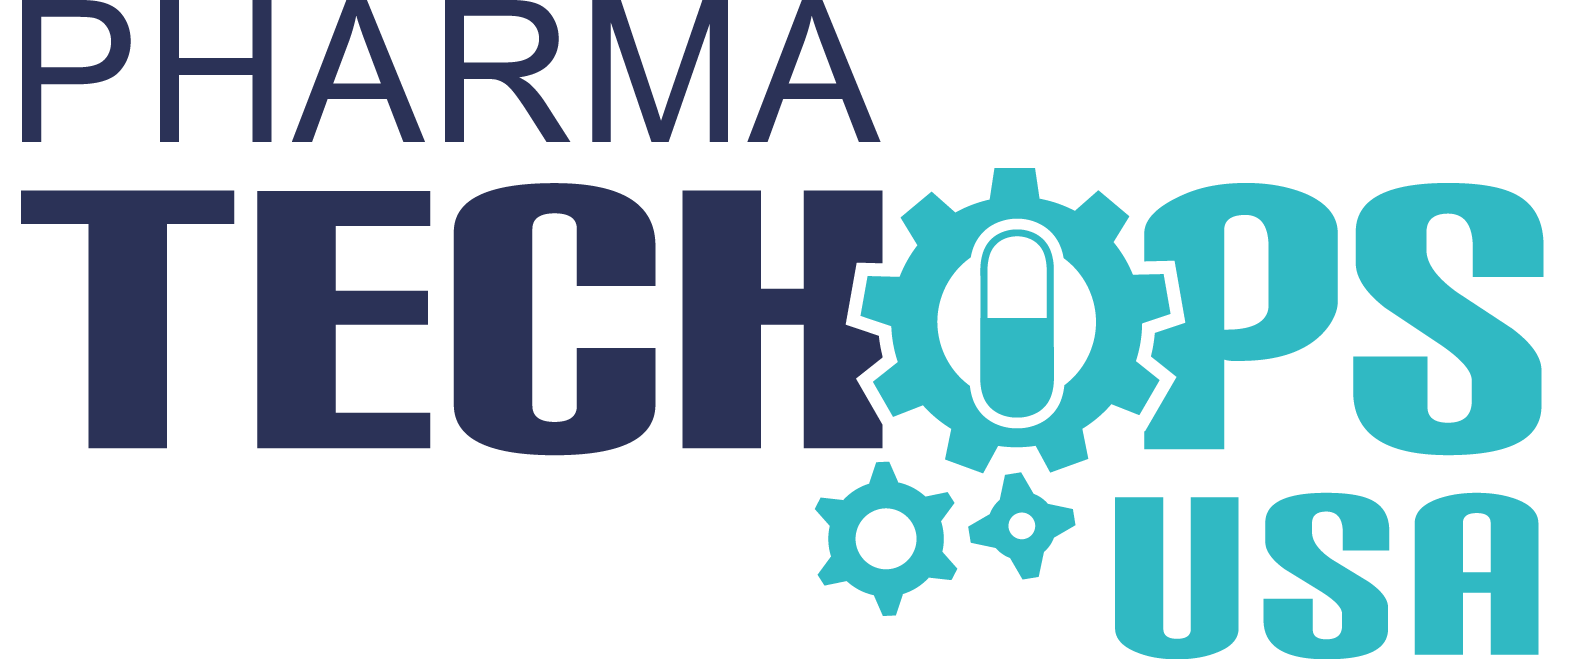 Pharma TechOps USA